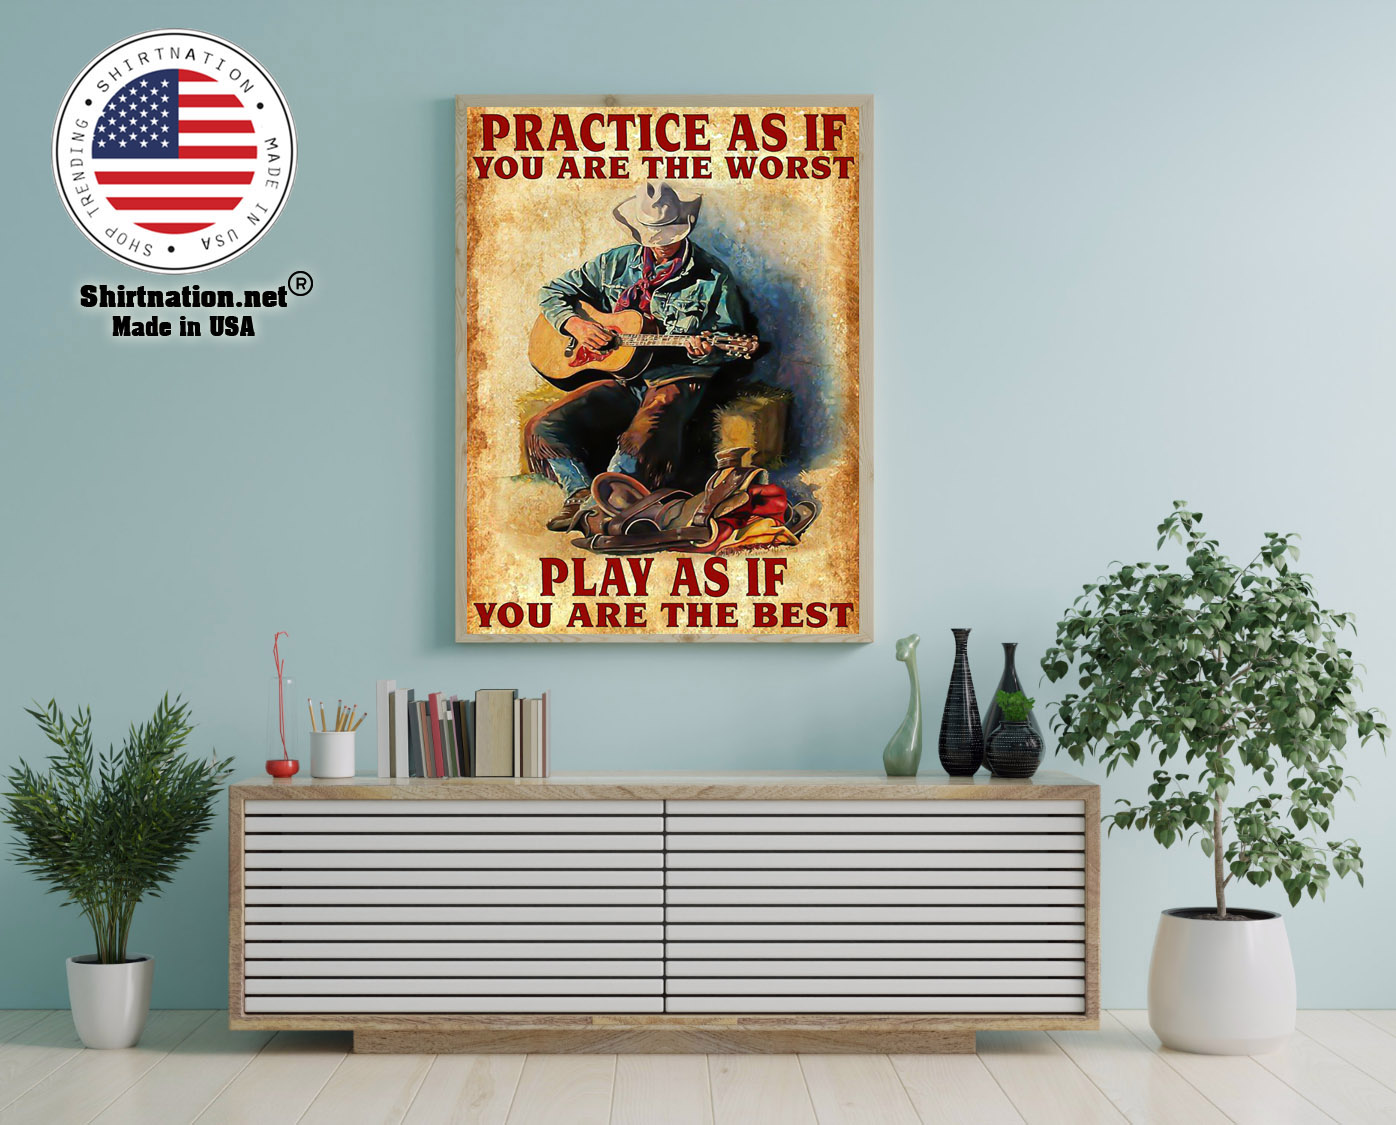 Guitar Practice as if you are the worst play as if you are the best poster 12